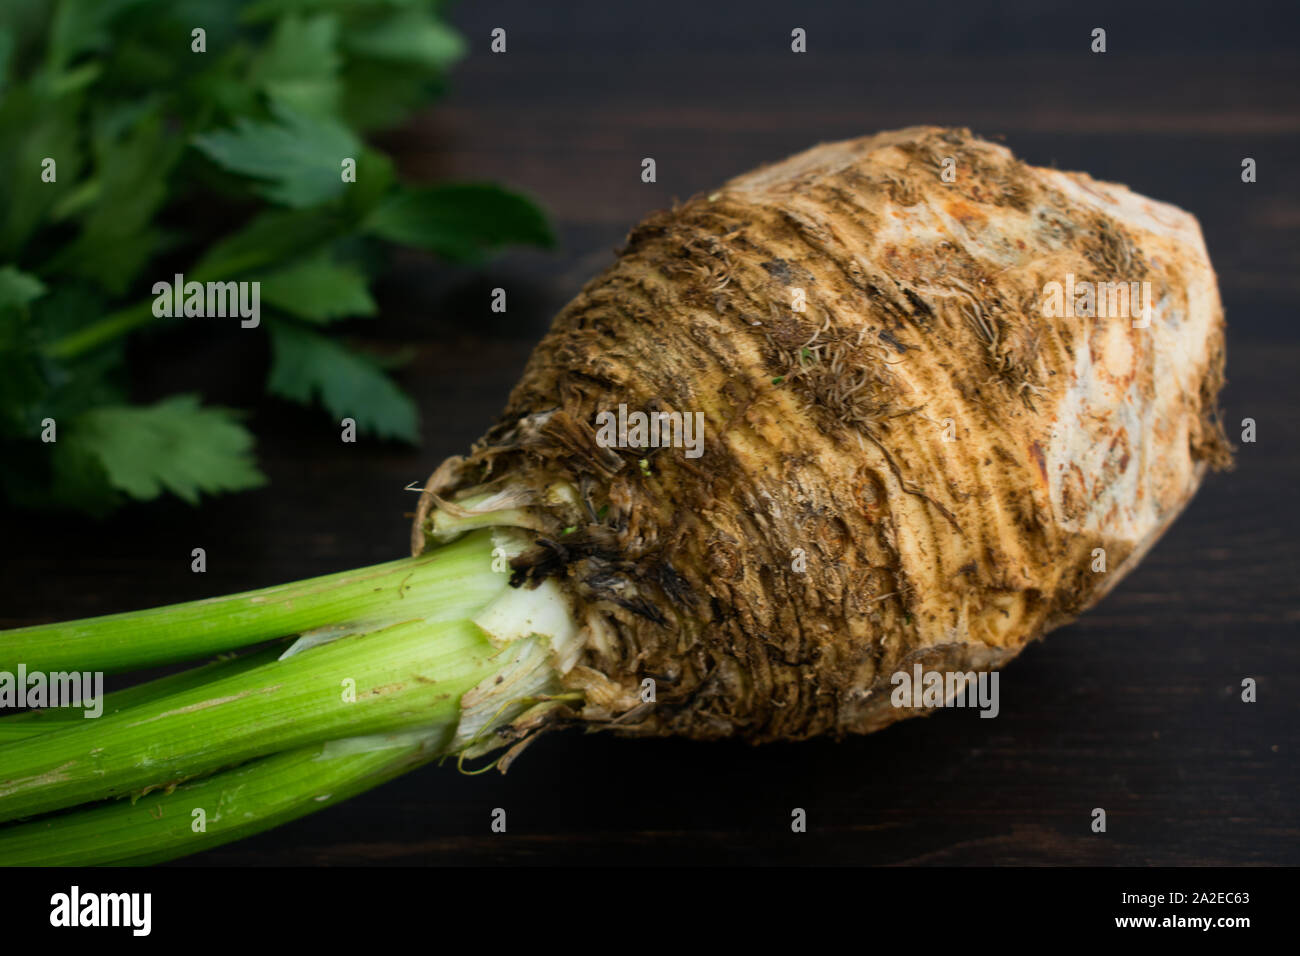 Celery Root with Stems and Leaves: Raw celeriac bulb with stems and leaves on a dark wood background Stock Photo